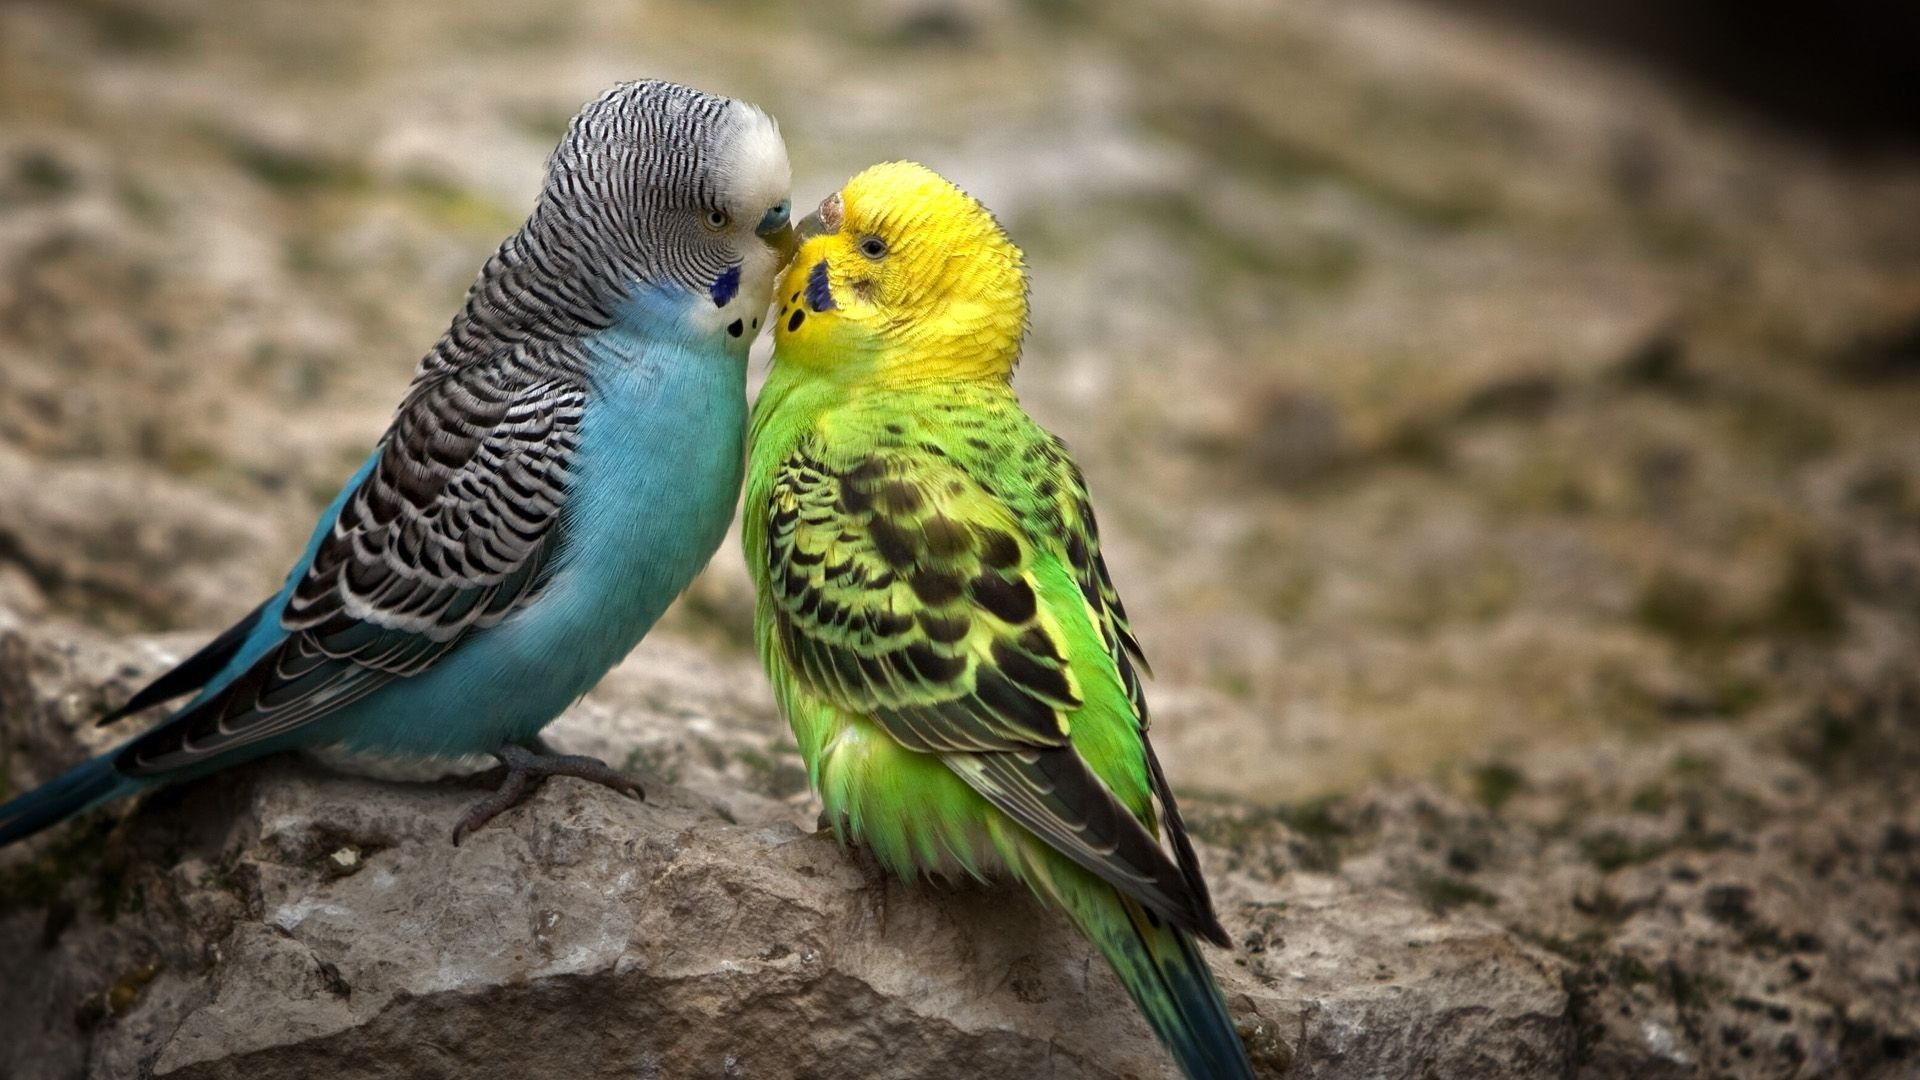 Parakeet hd wallpaper download